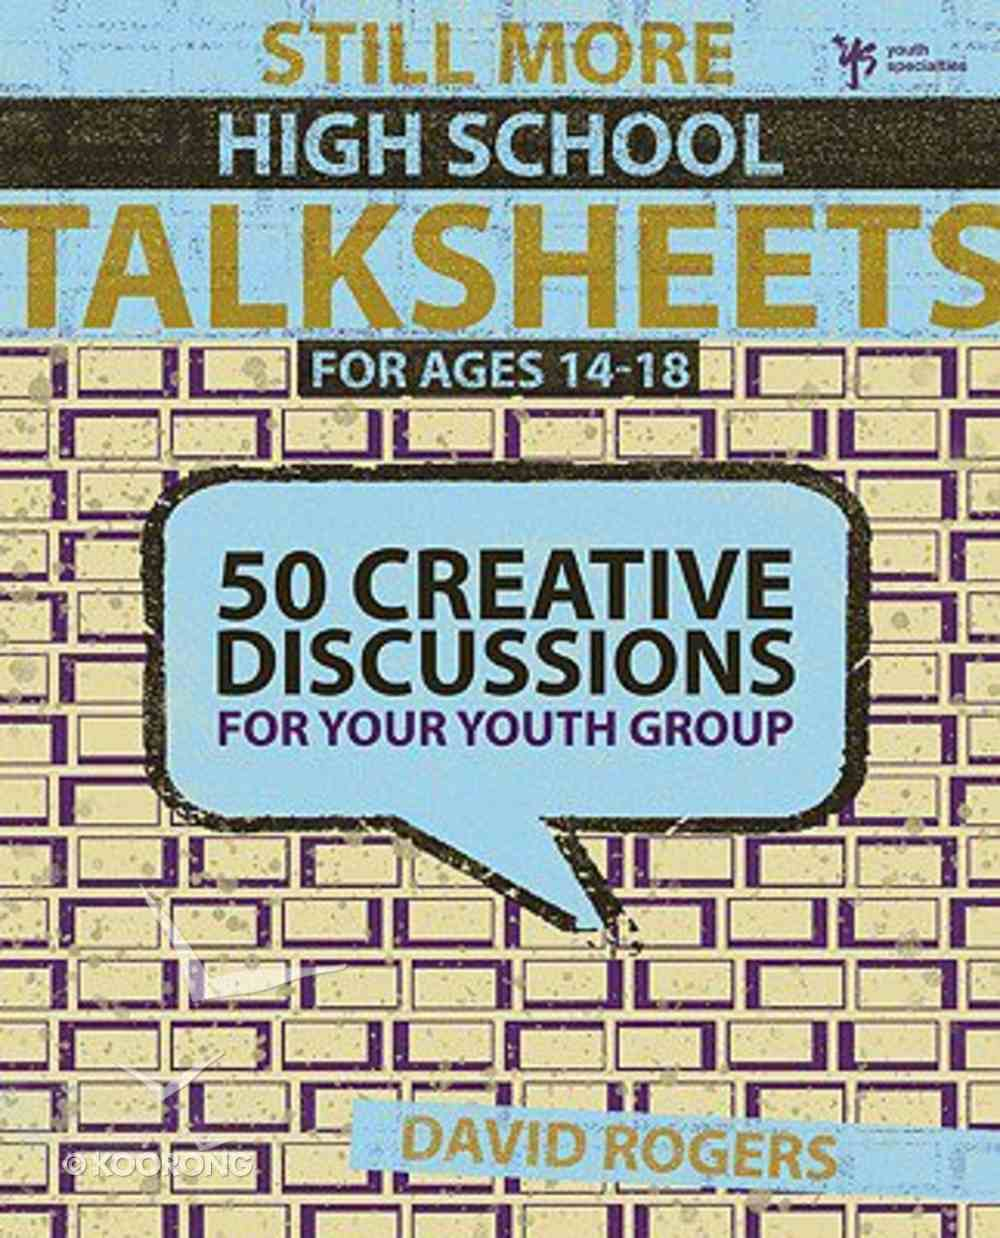 Still More High School Creative Discussions (Talksheets Series) Paperback